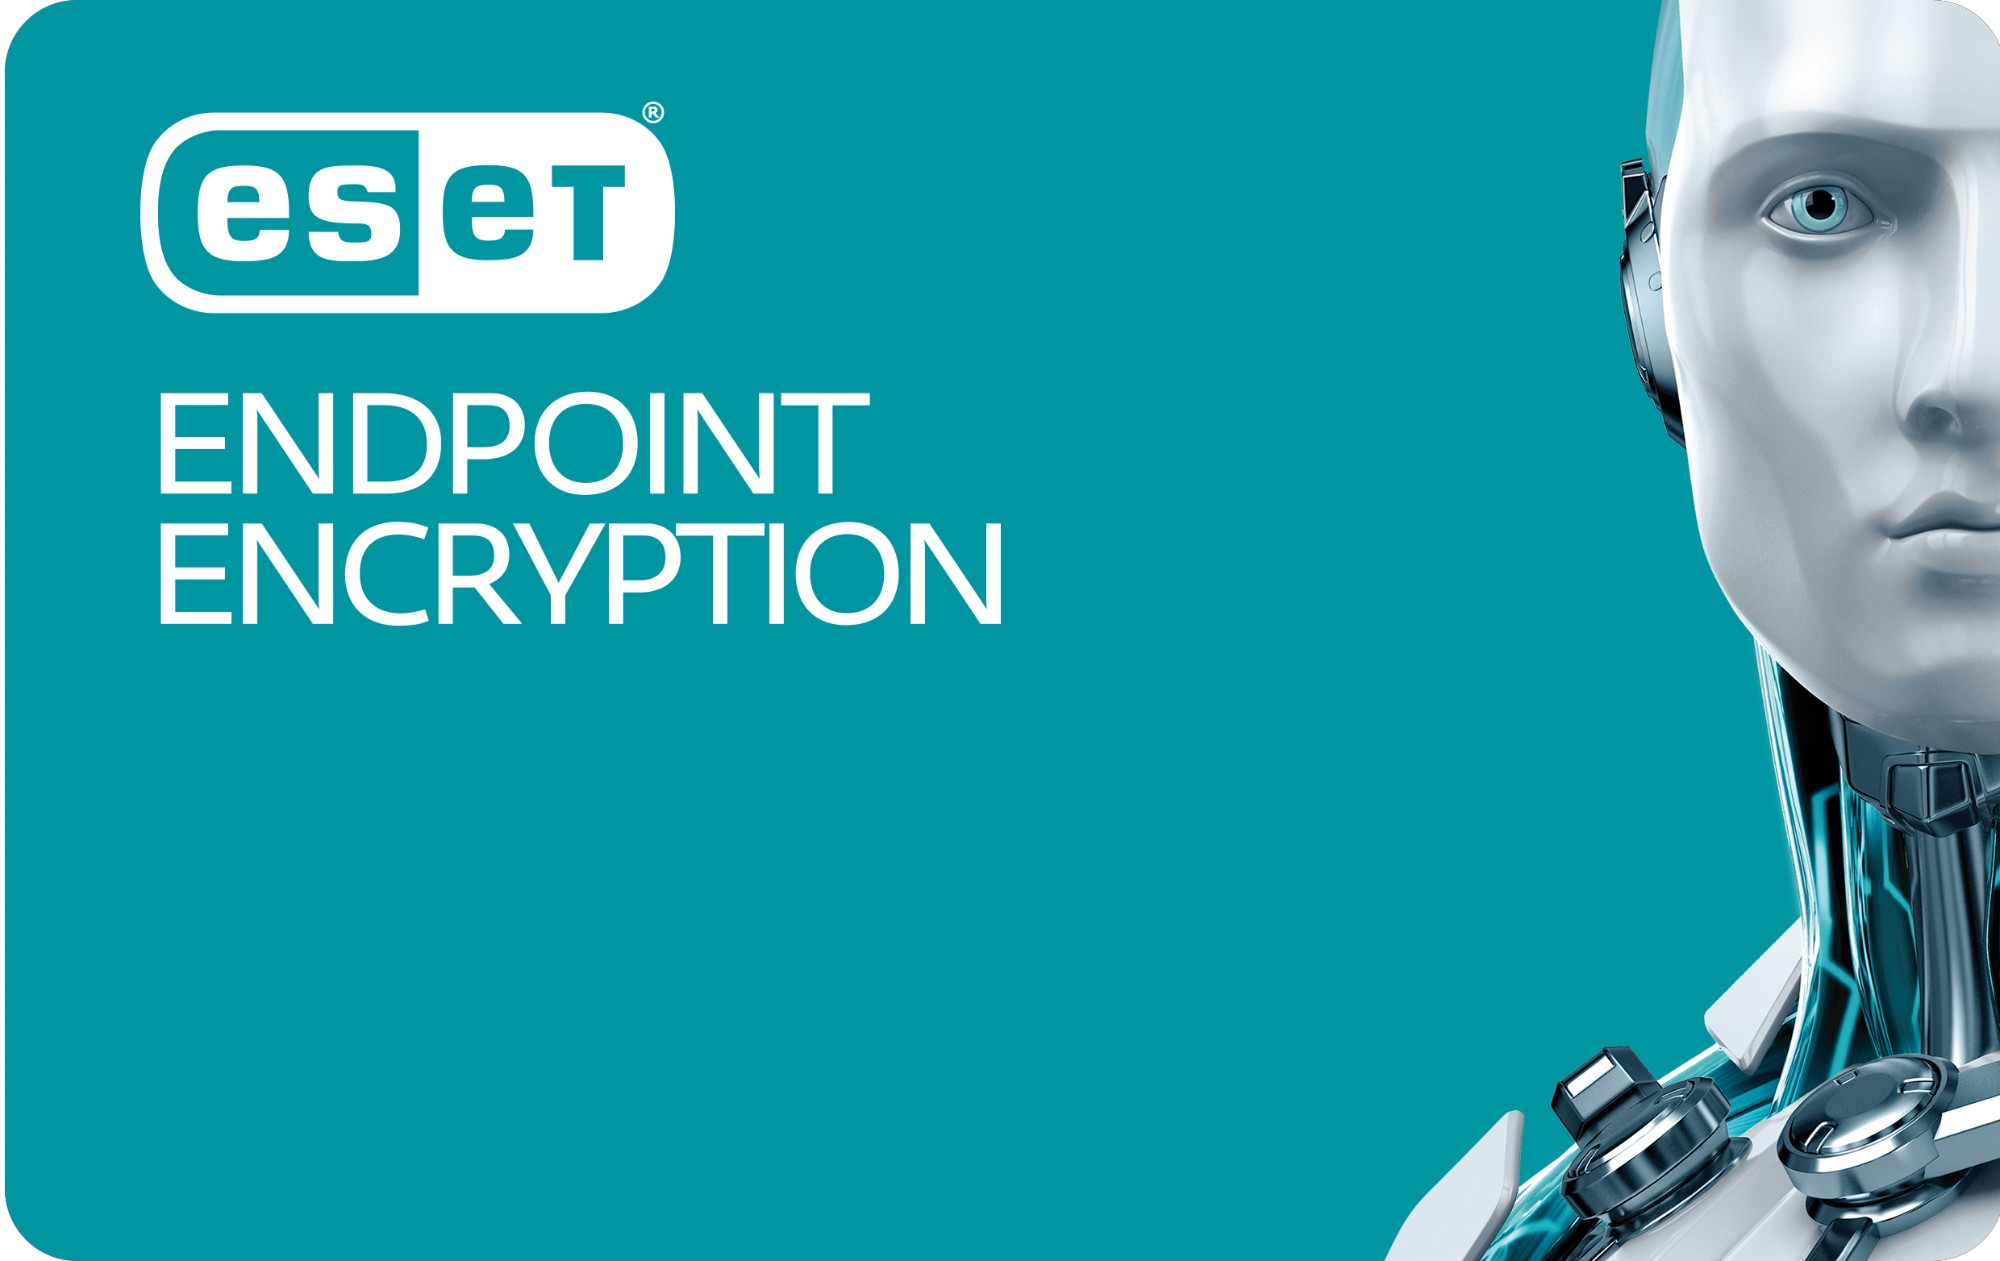 ESET Endpoint Encryption Pro 500 - 999 User Government (GOV) license 500 - 999 license(s) 2 year(s)